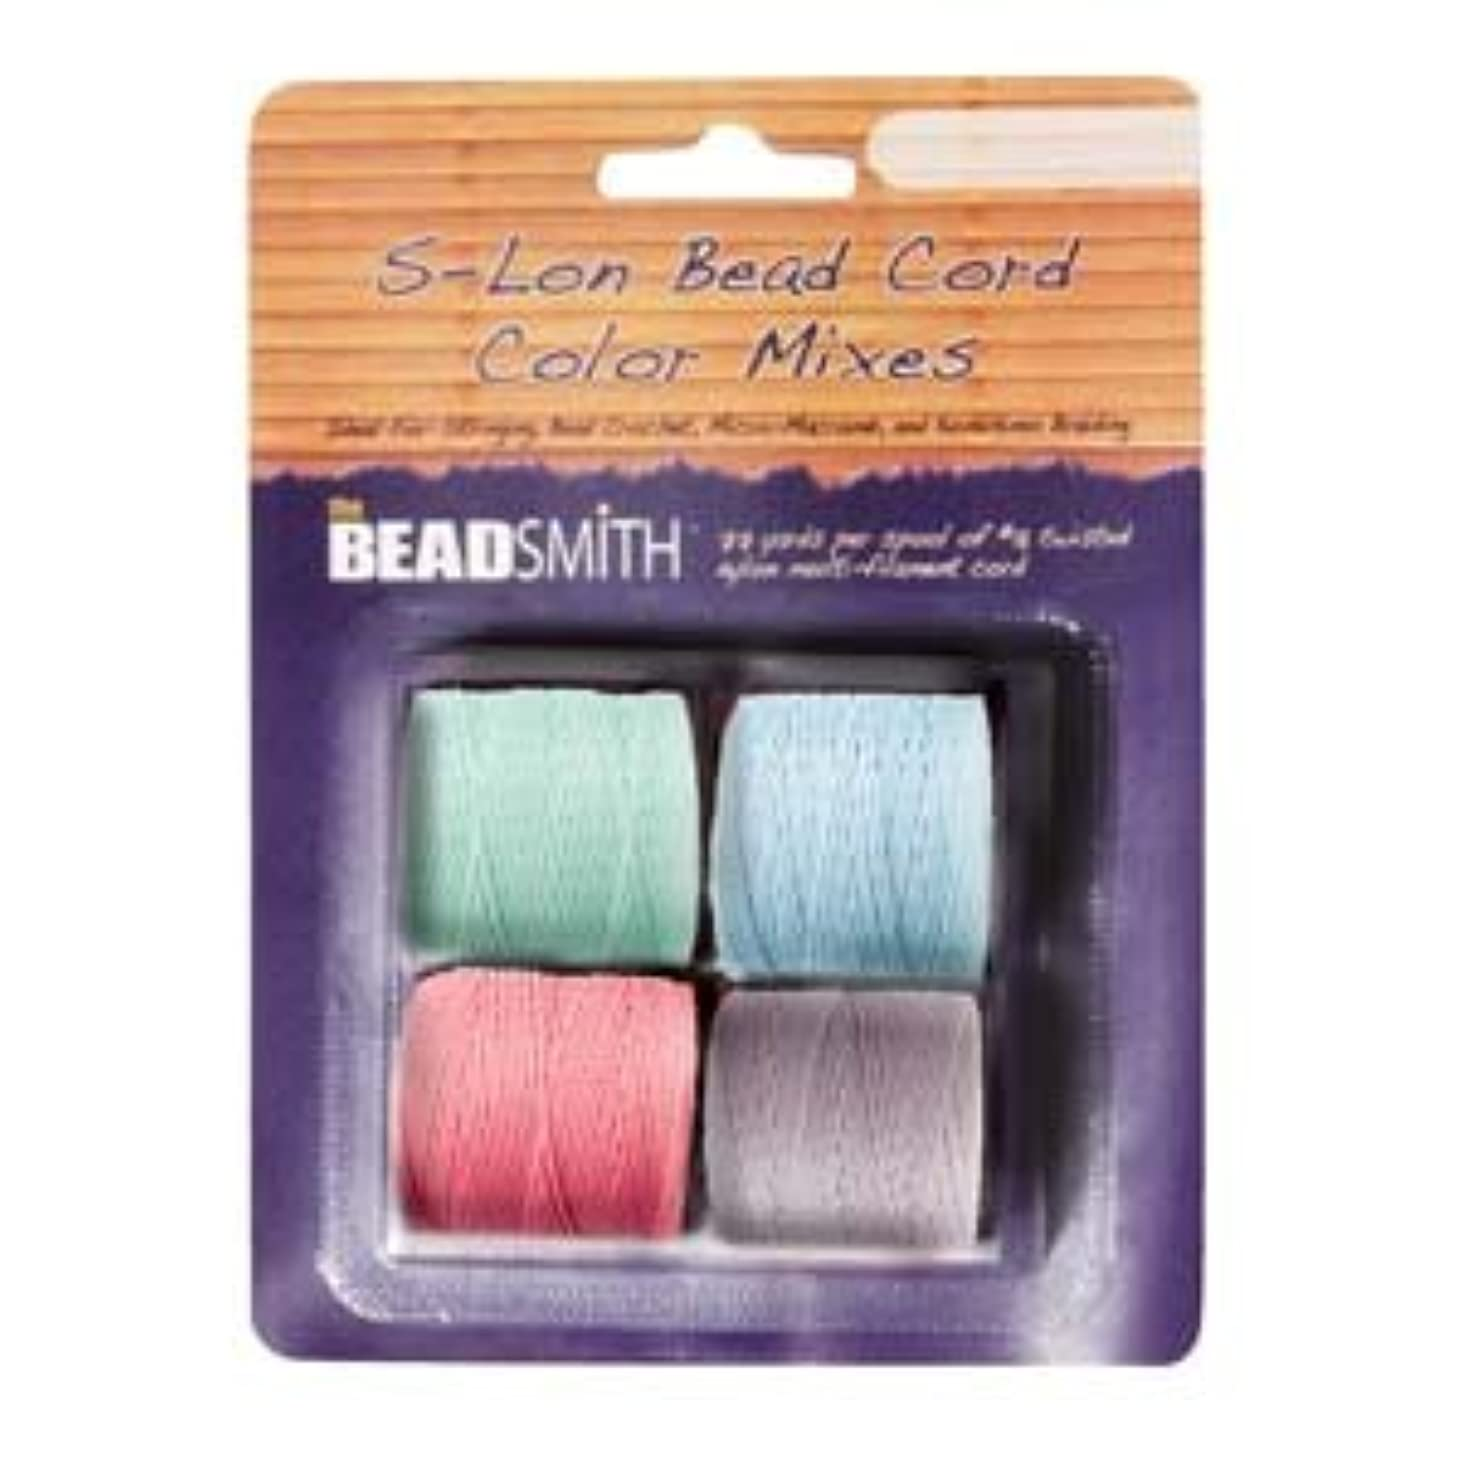 4 Spools Super-lon #18 Cord Ideal for Stringing Beading Crochet and Micro-macram Jewelry Compatible with Kumihimo Projects S-lon Pastels Mix